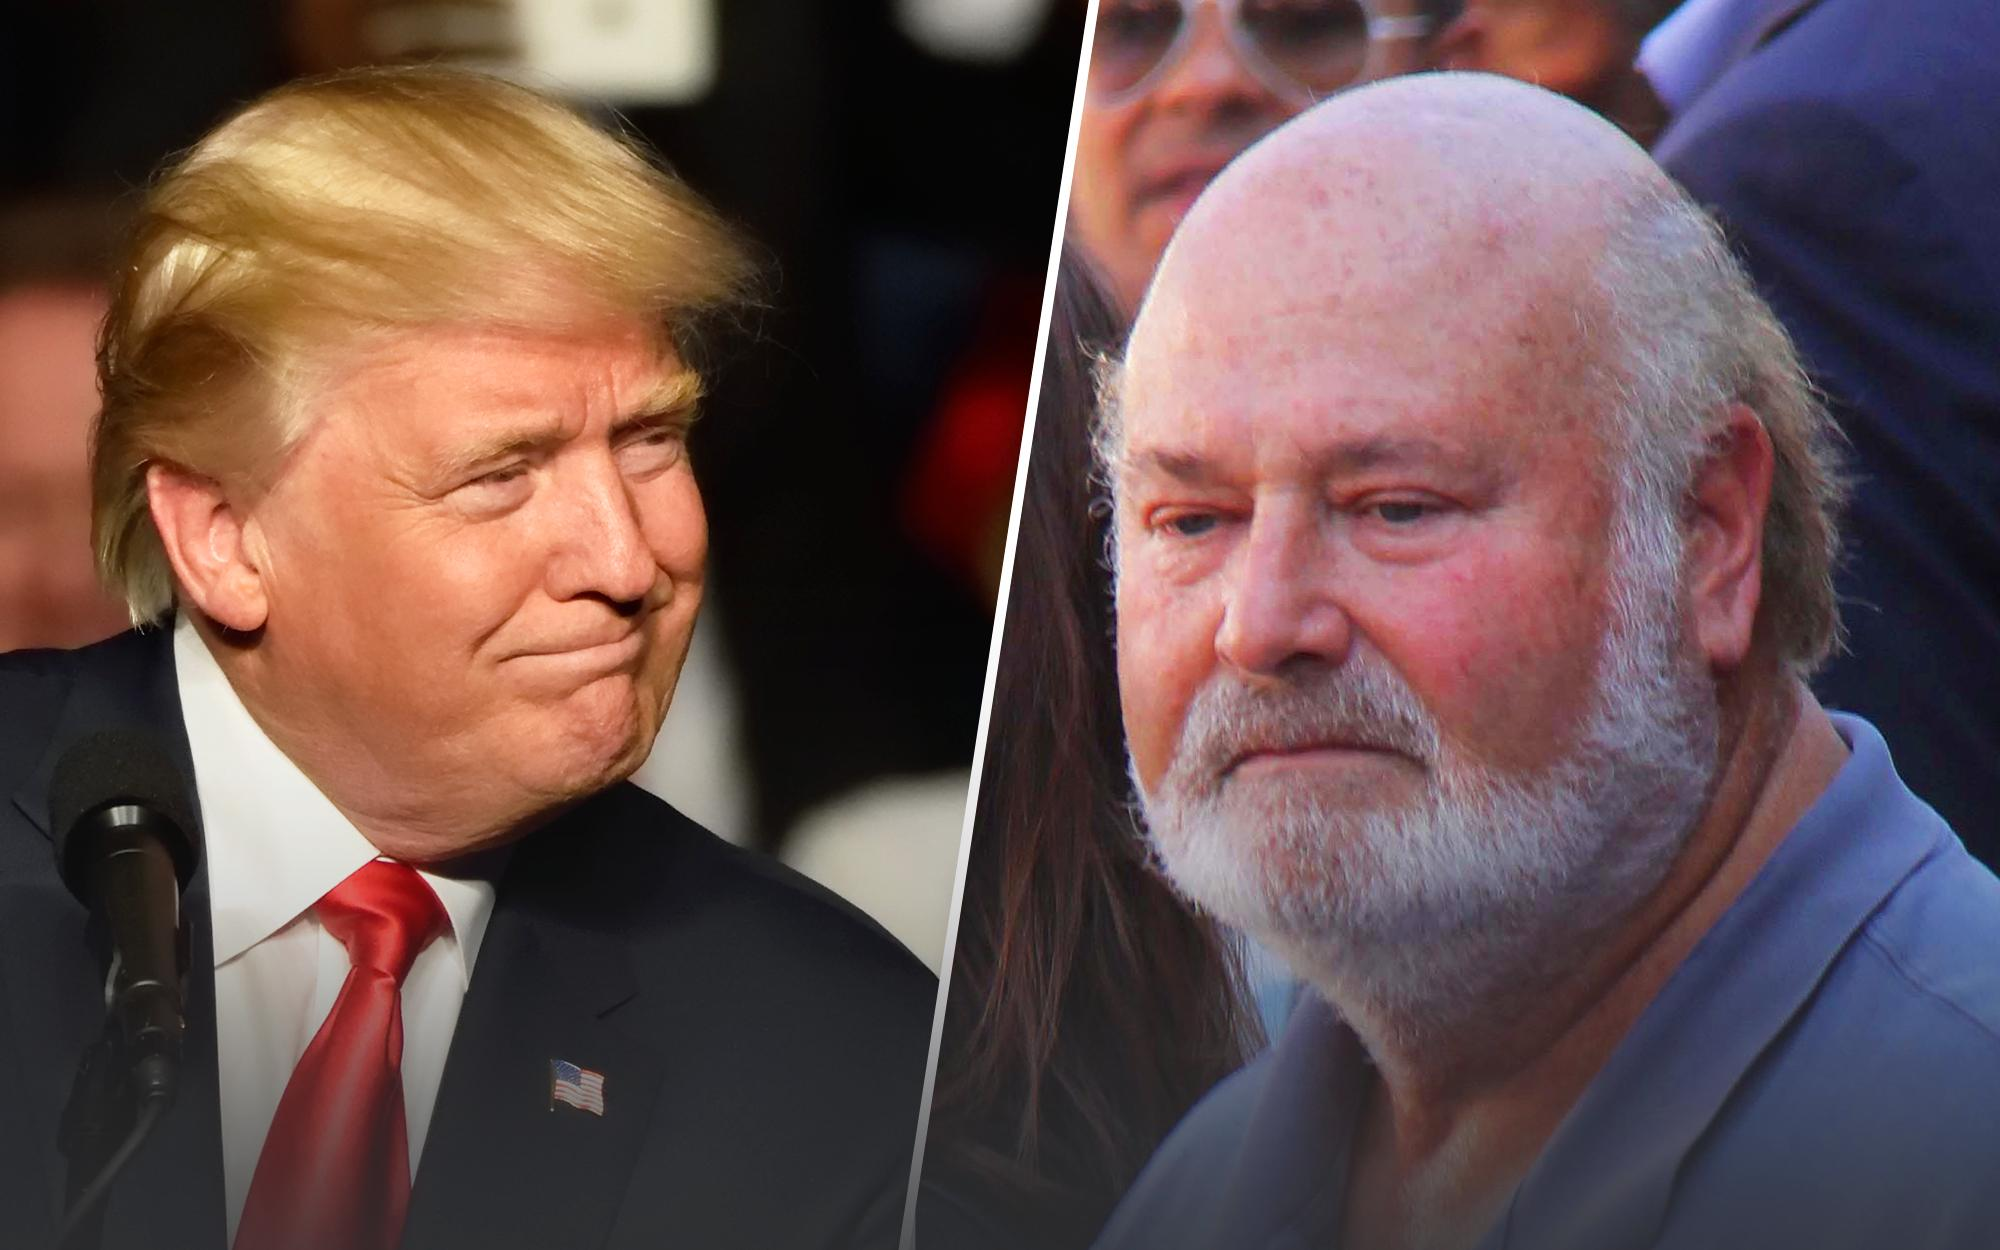 Rob Reiner Unleashes On Republican Senators – Claims They Have 'Collective Brain Damage' For Wanting To Acquit Trump